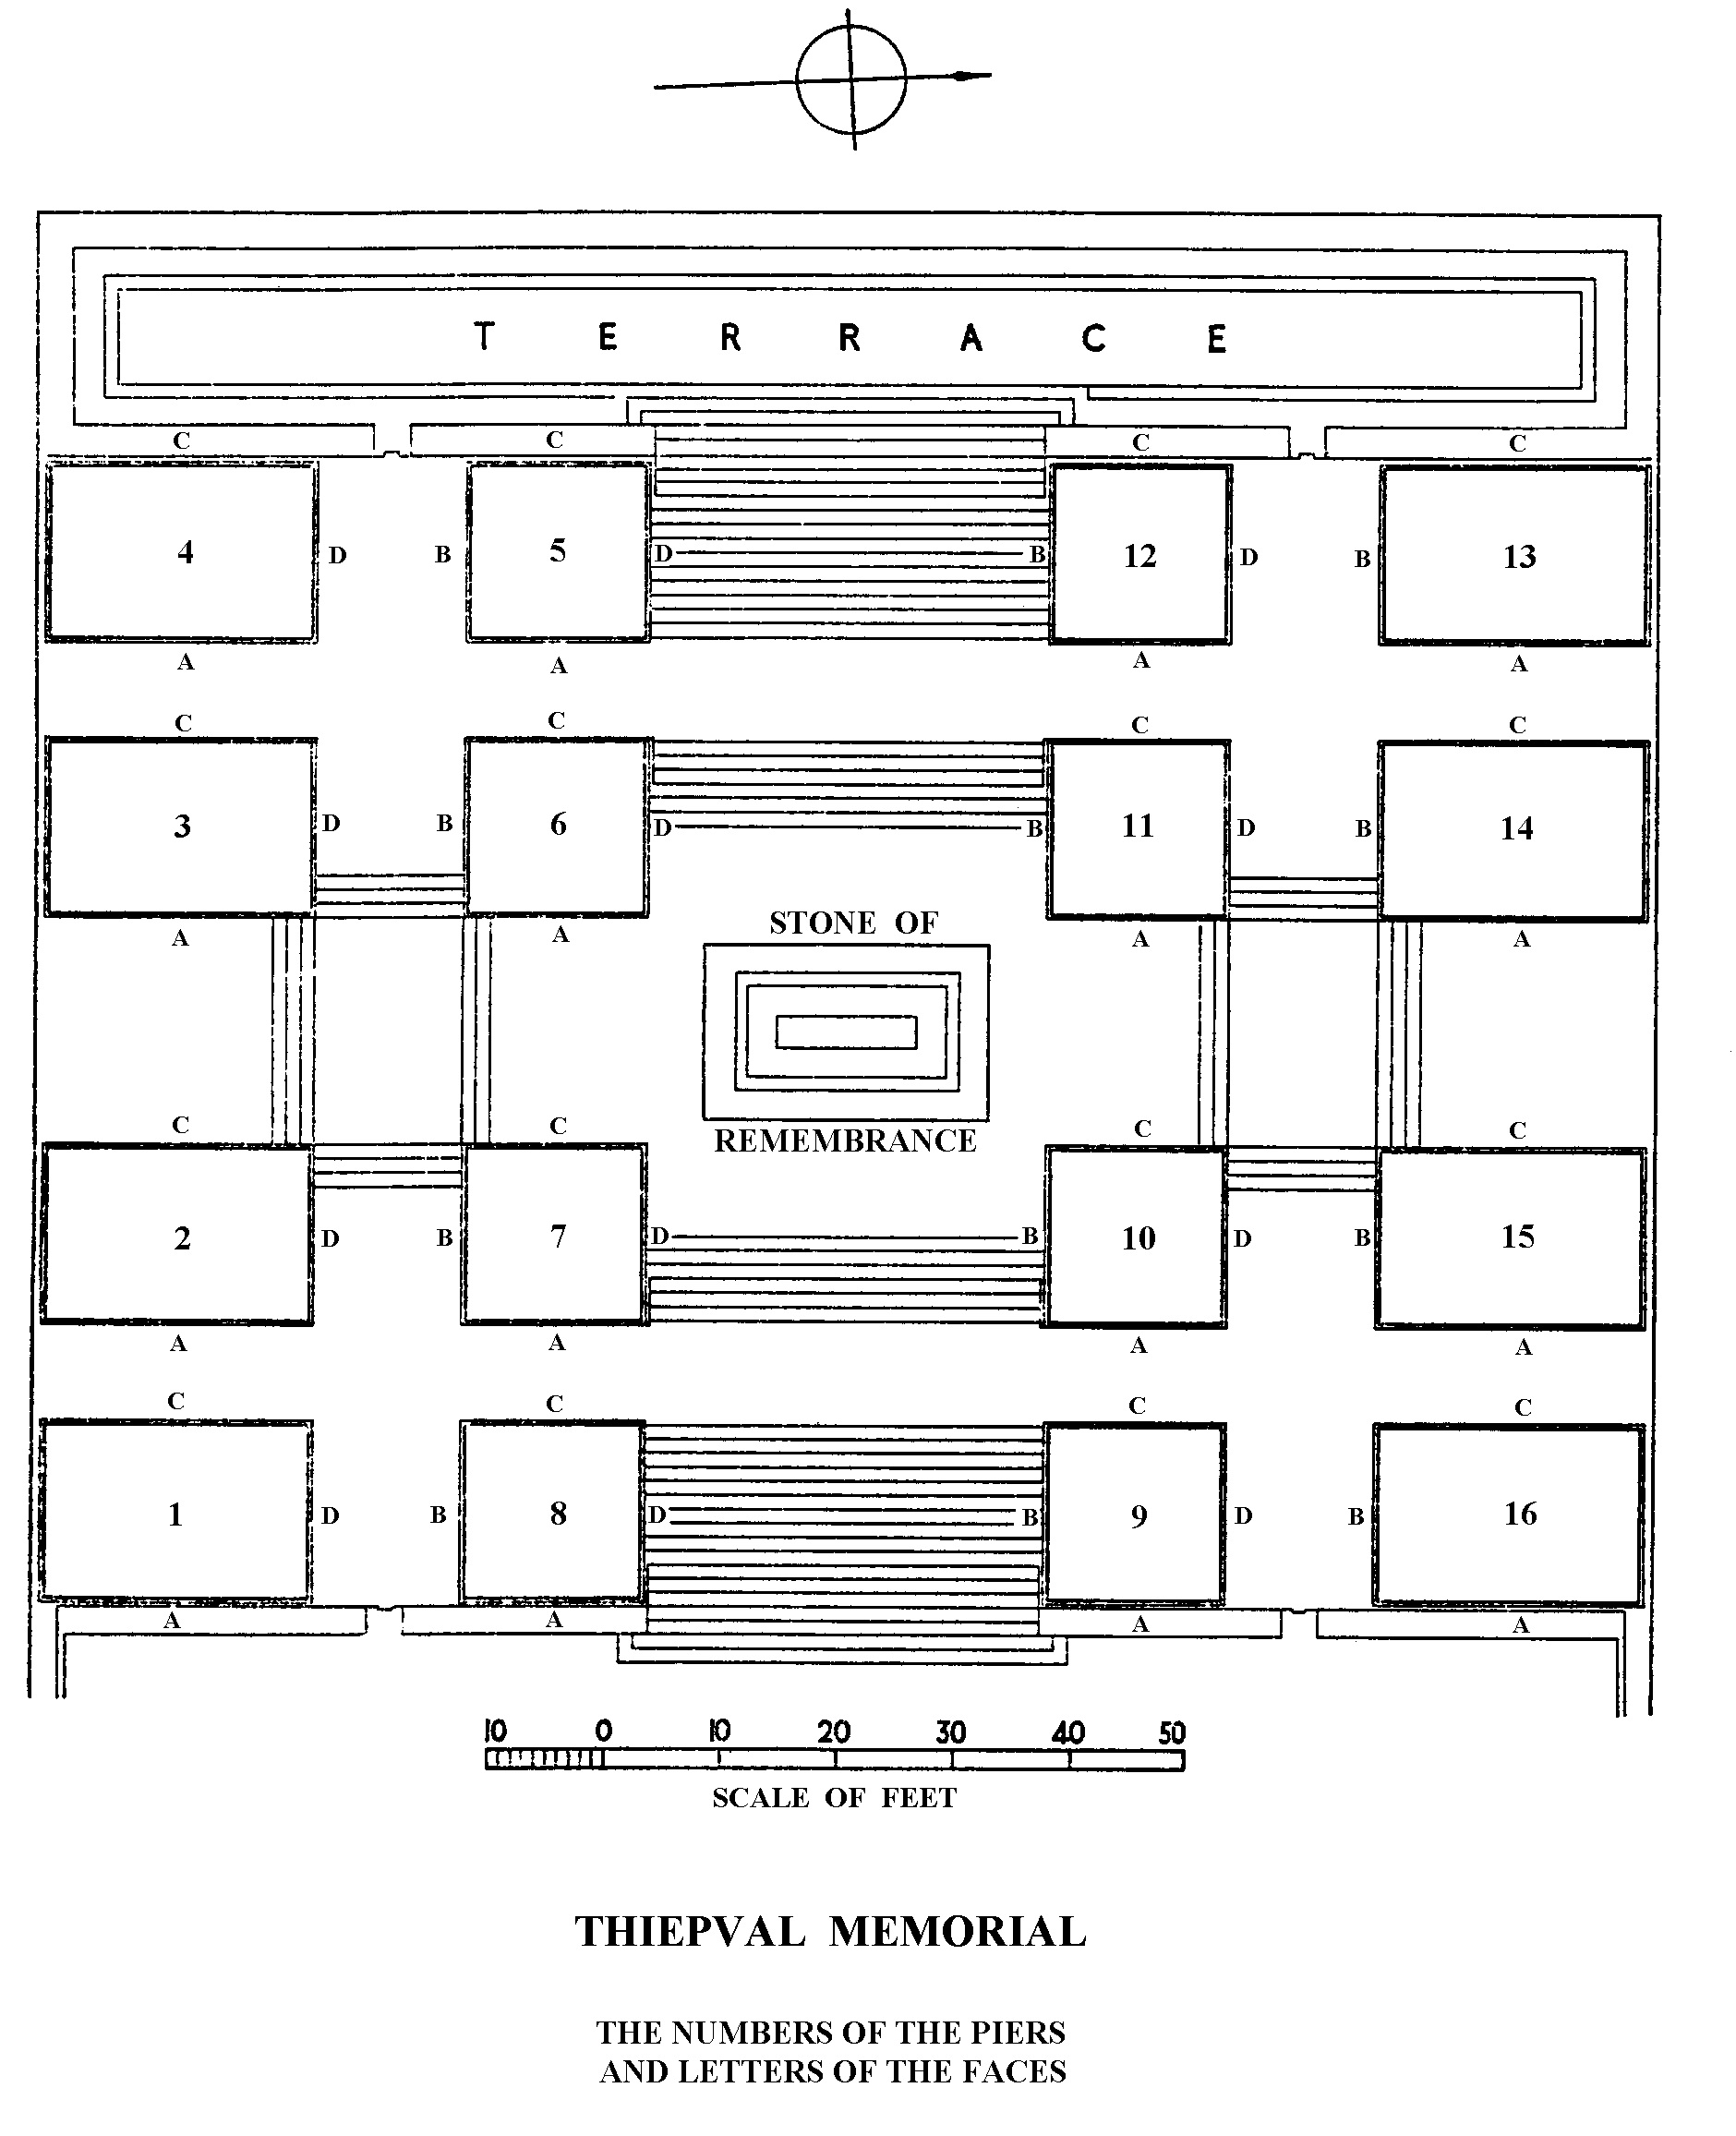 Plan of the Thiepval Memorial showing the location (Pier and Face 3C and 3D) where 37210 Private George Henry Watts is commemorated.